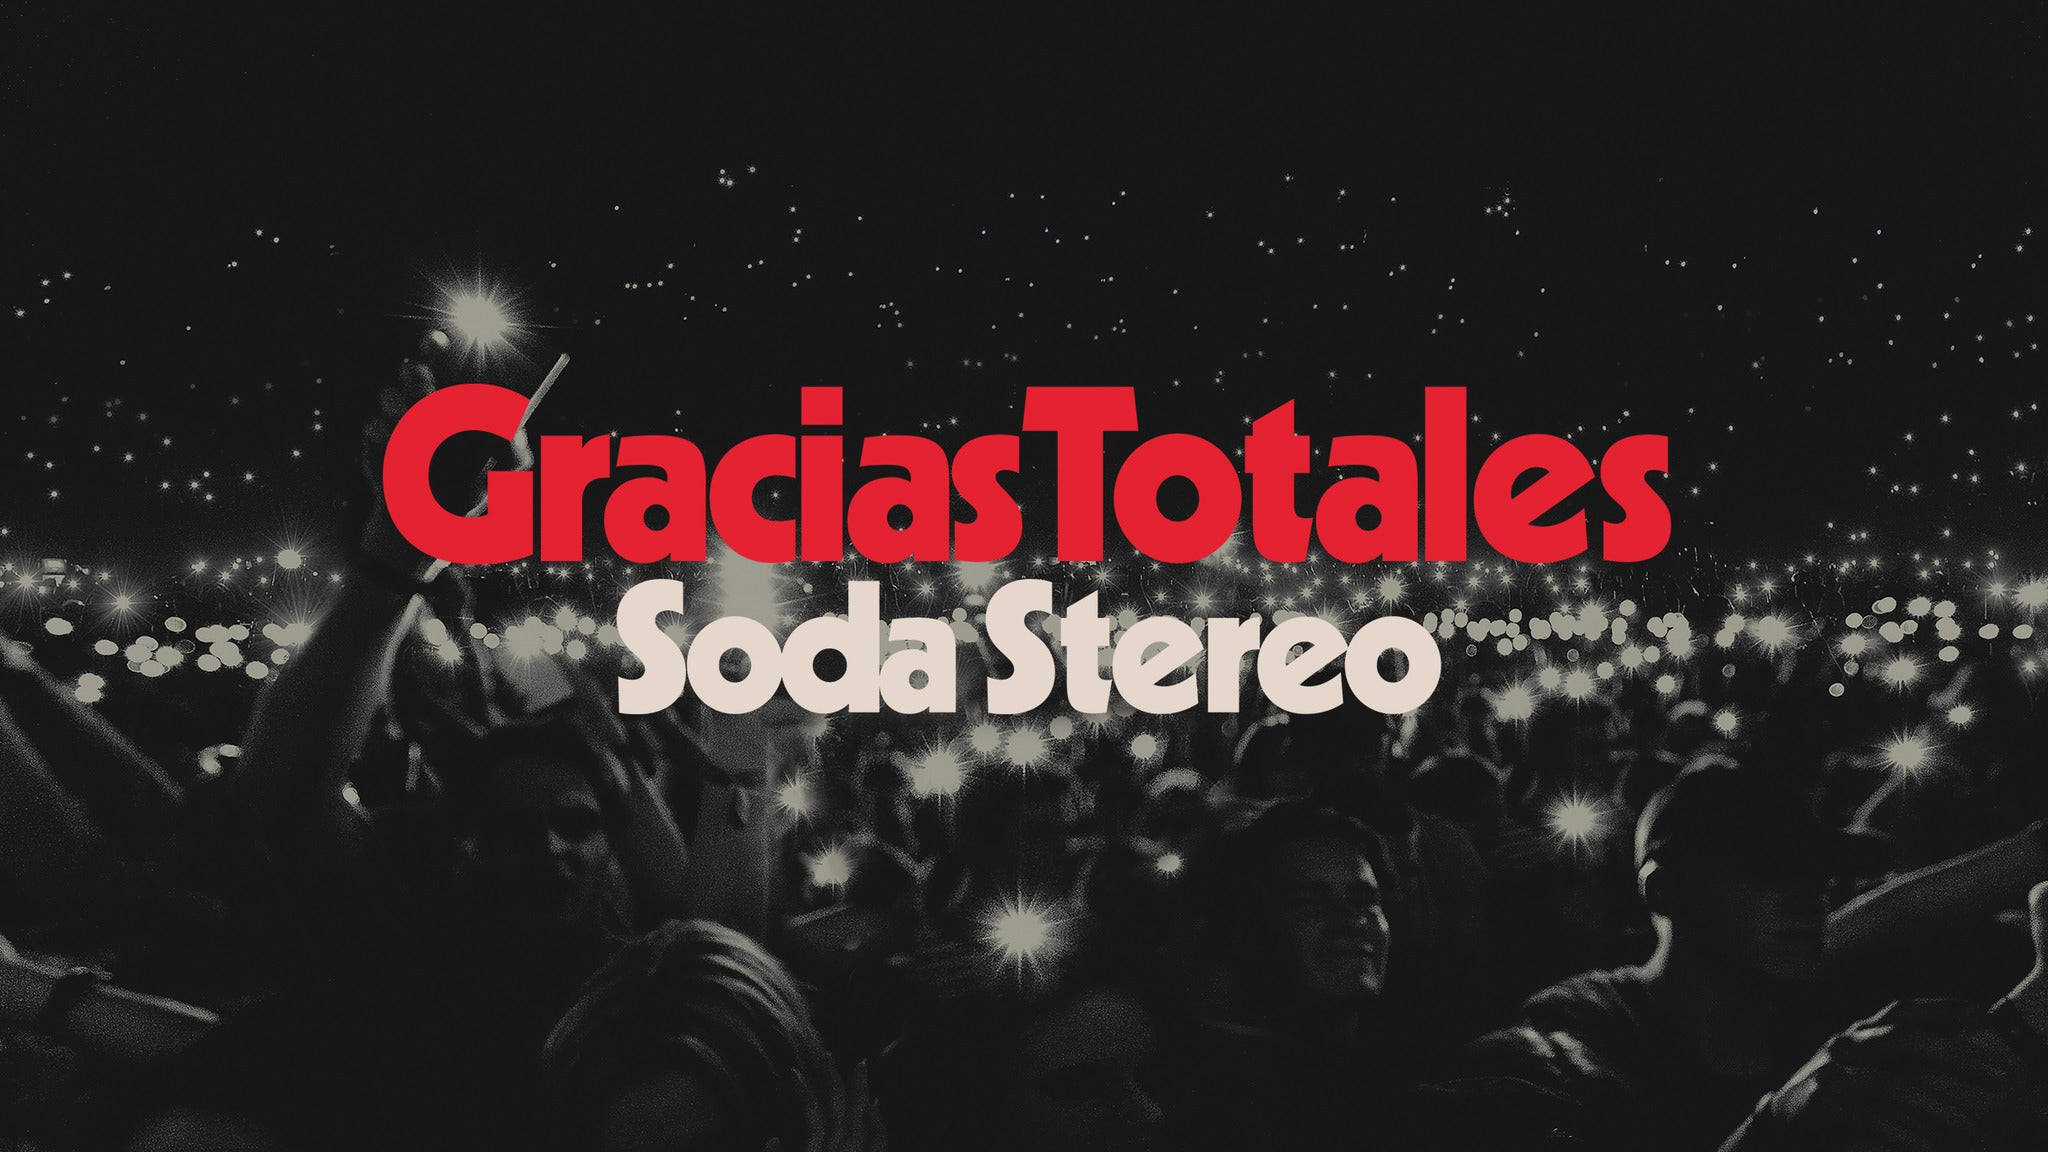 Soda Stereo - Gracias Totales at The Forum